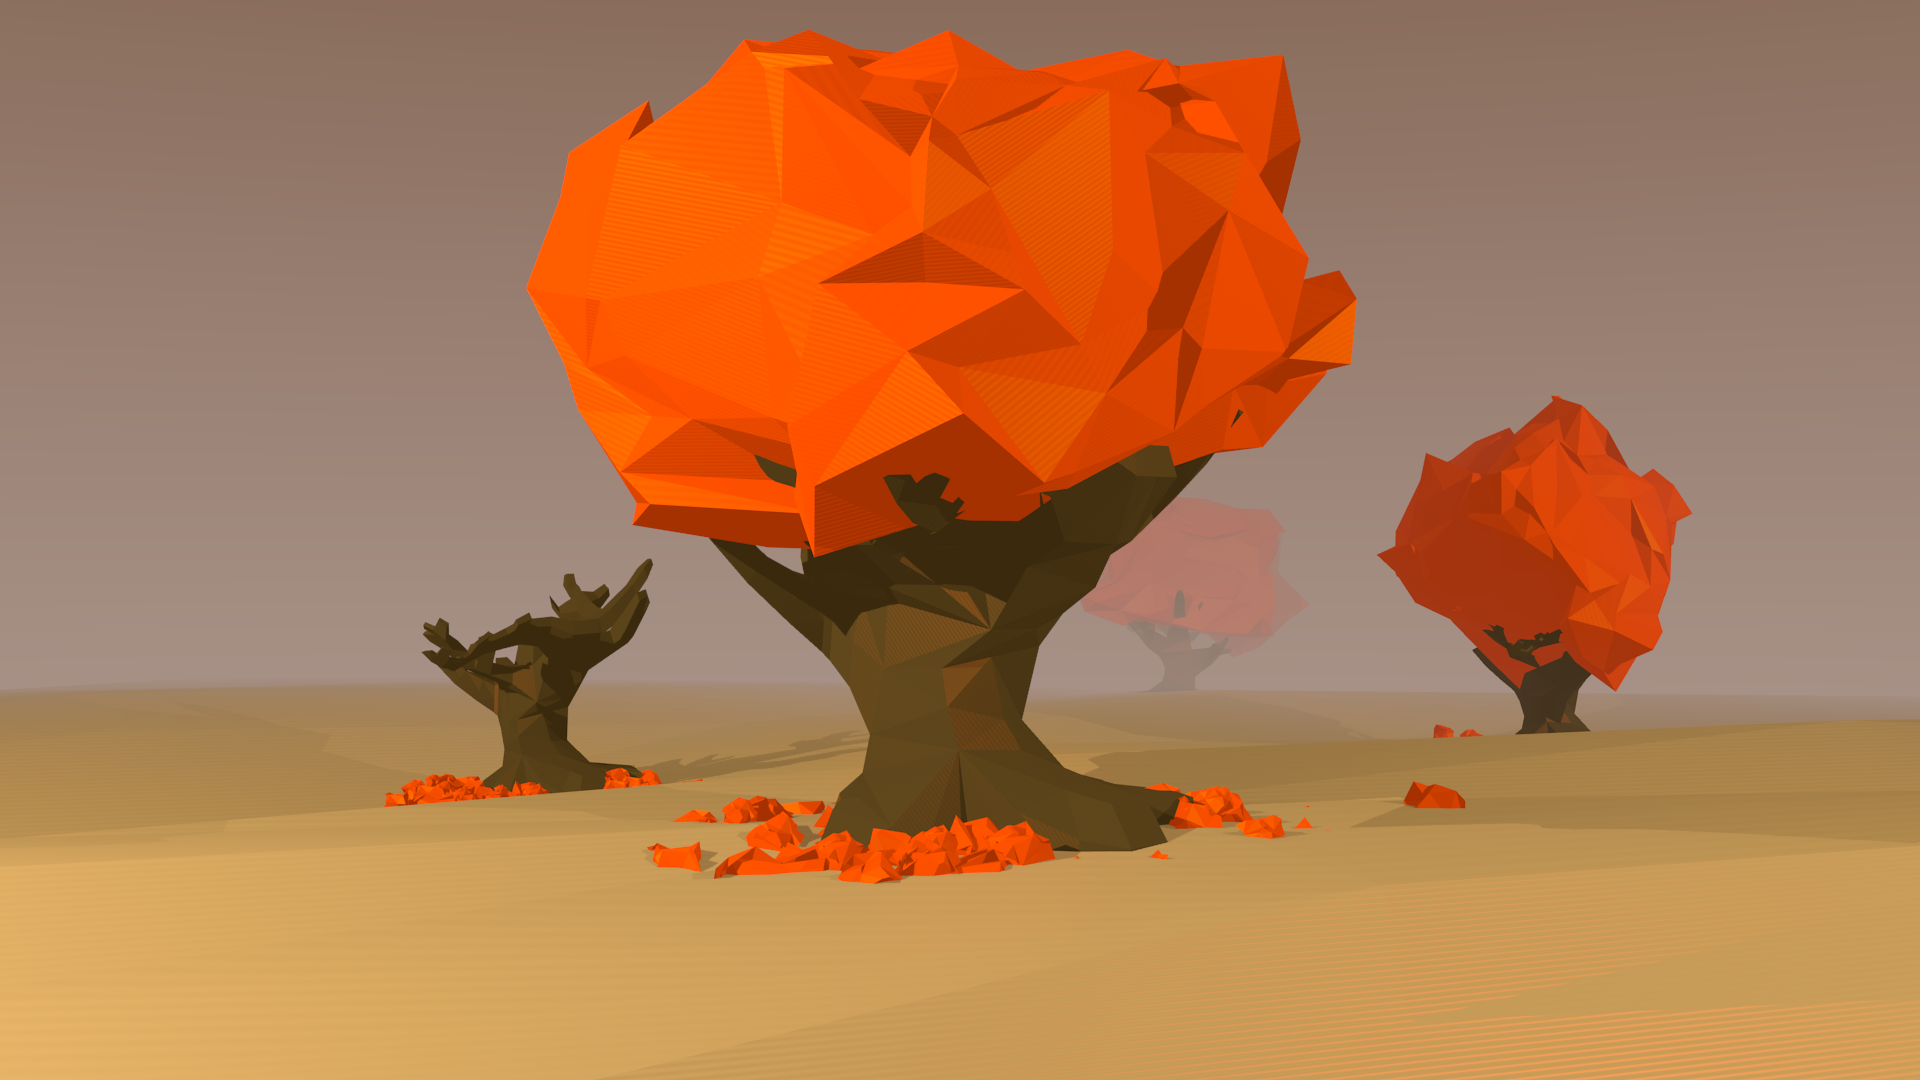 Low Poly HD Backgrounds for PC